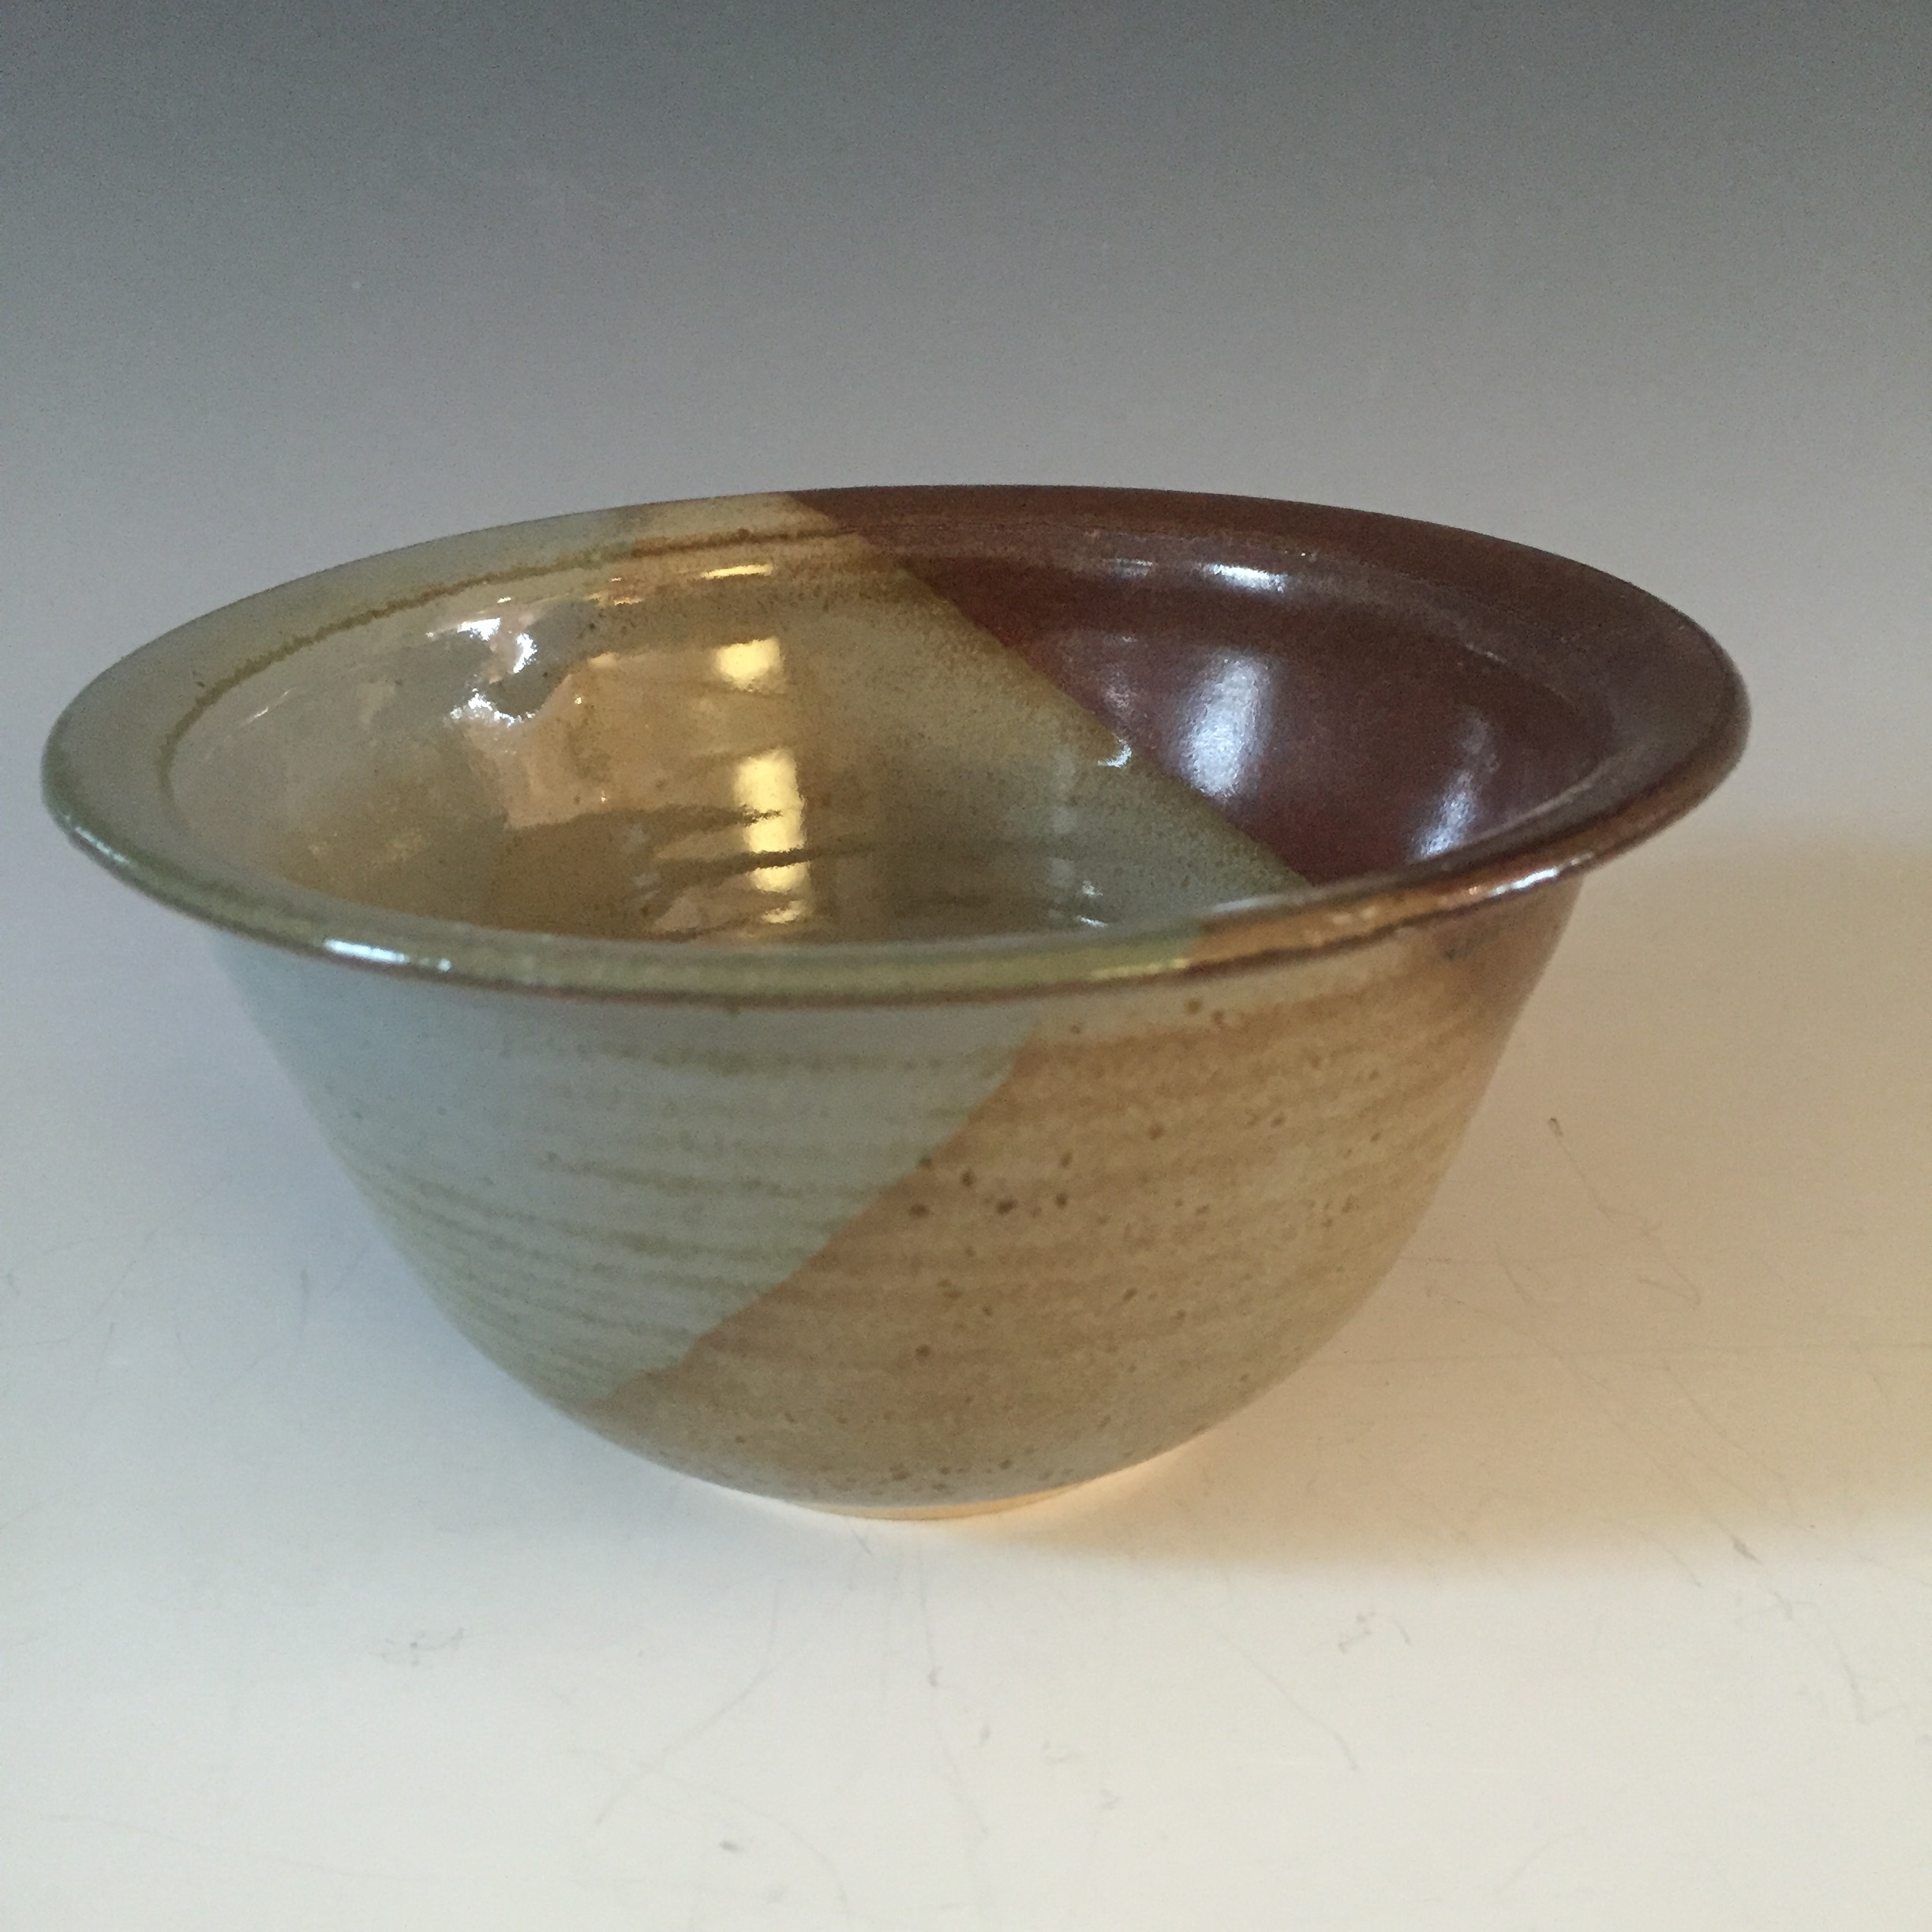 Soup Bowl with Flat Rim